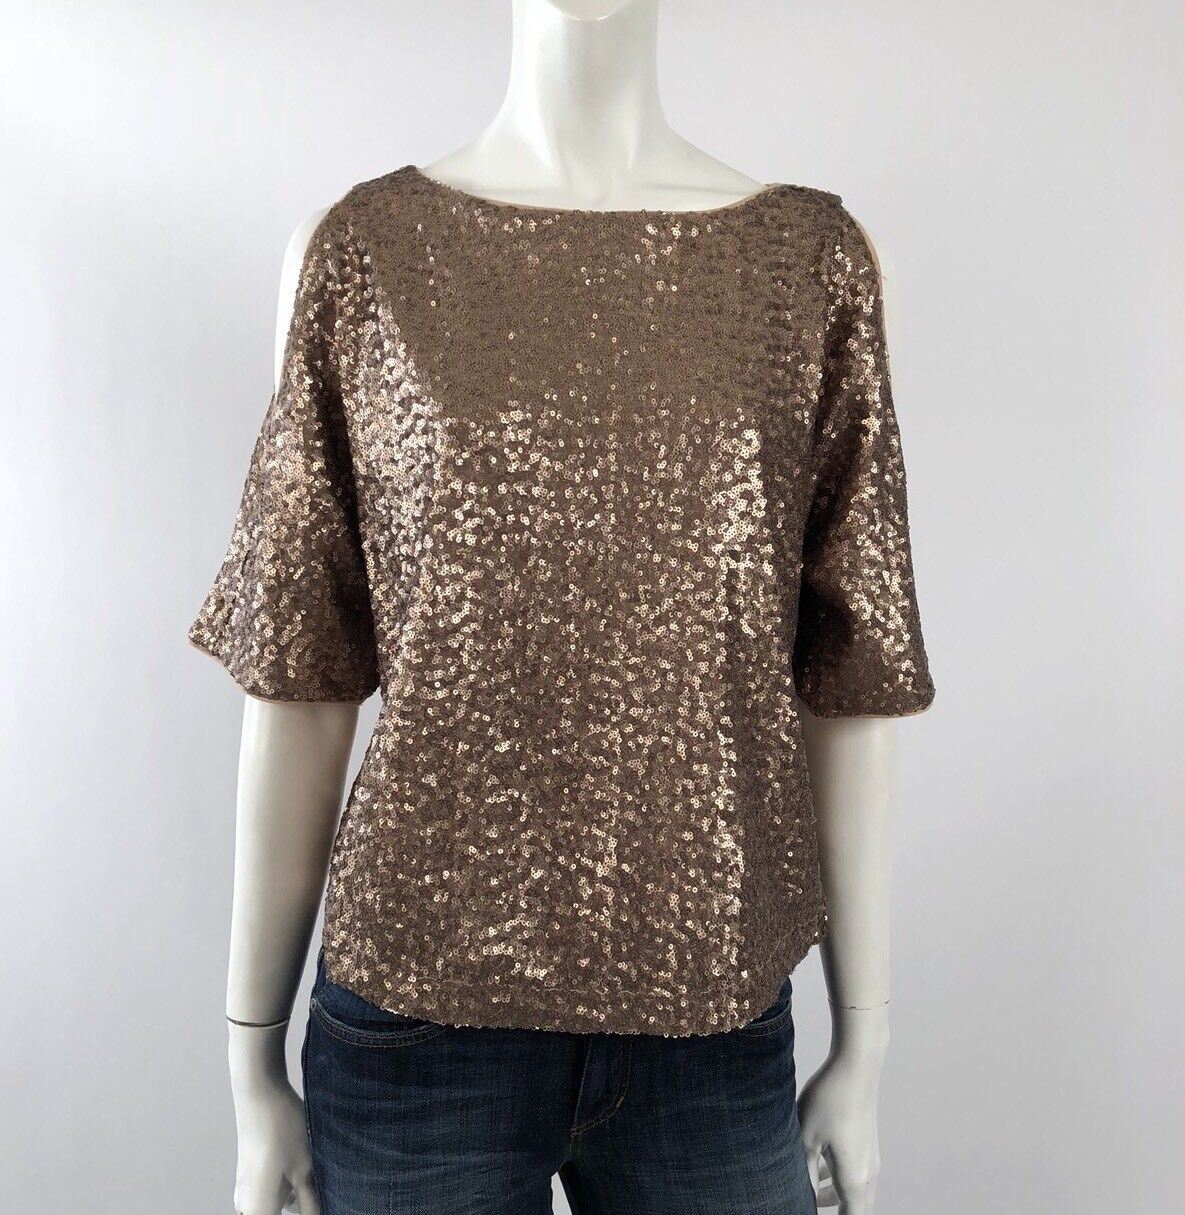 Splendid NWT  XS Anthropologie Short Sleeve Sequin Top Blouse Open Shoulder